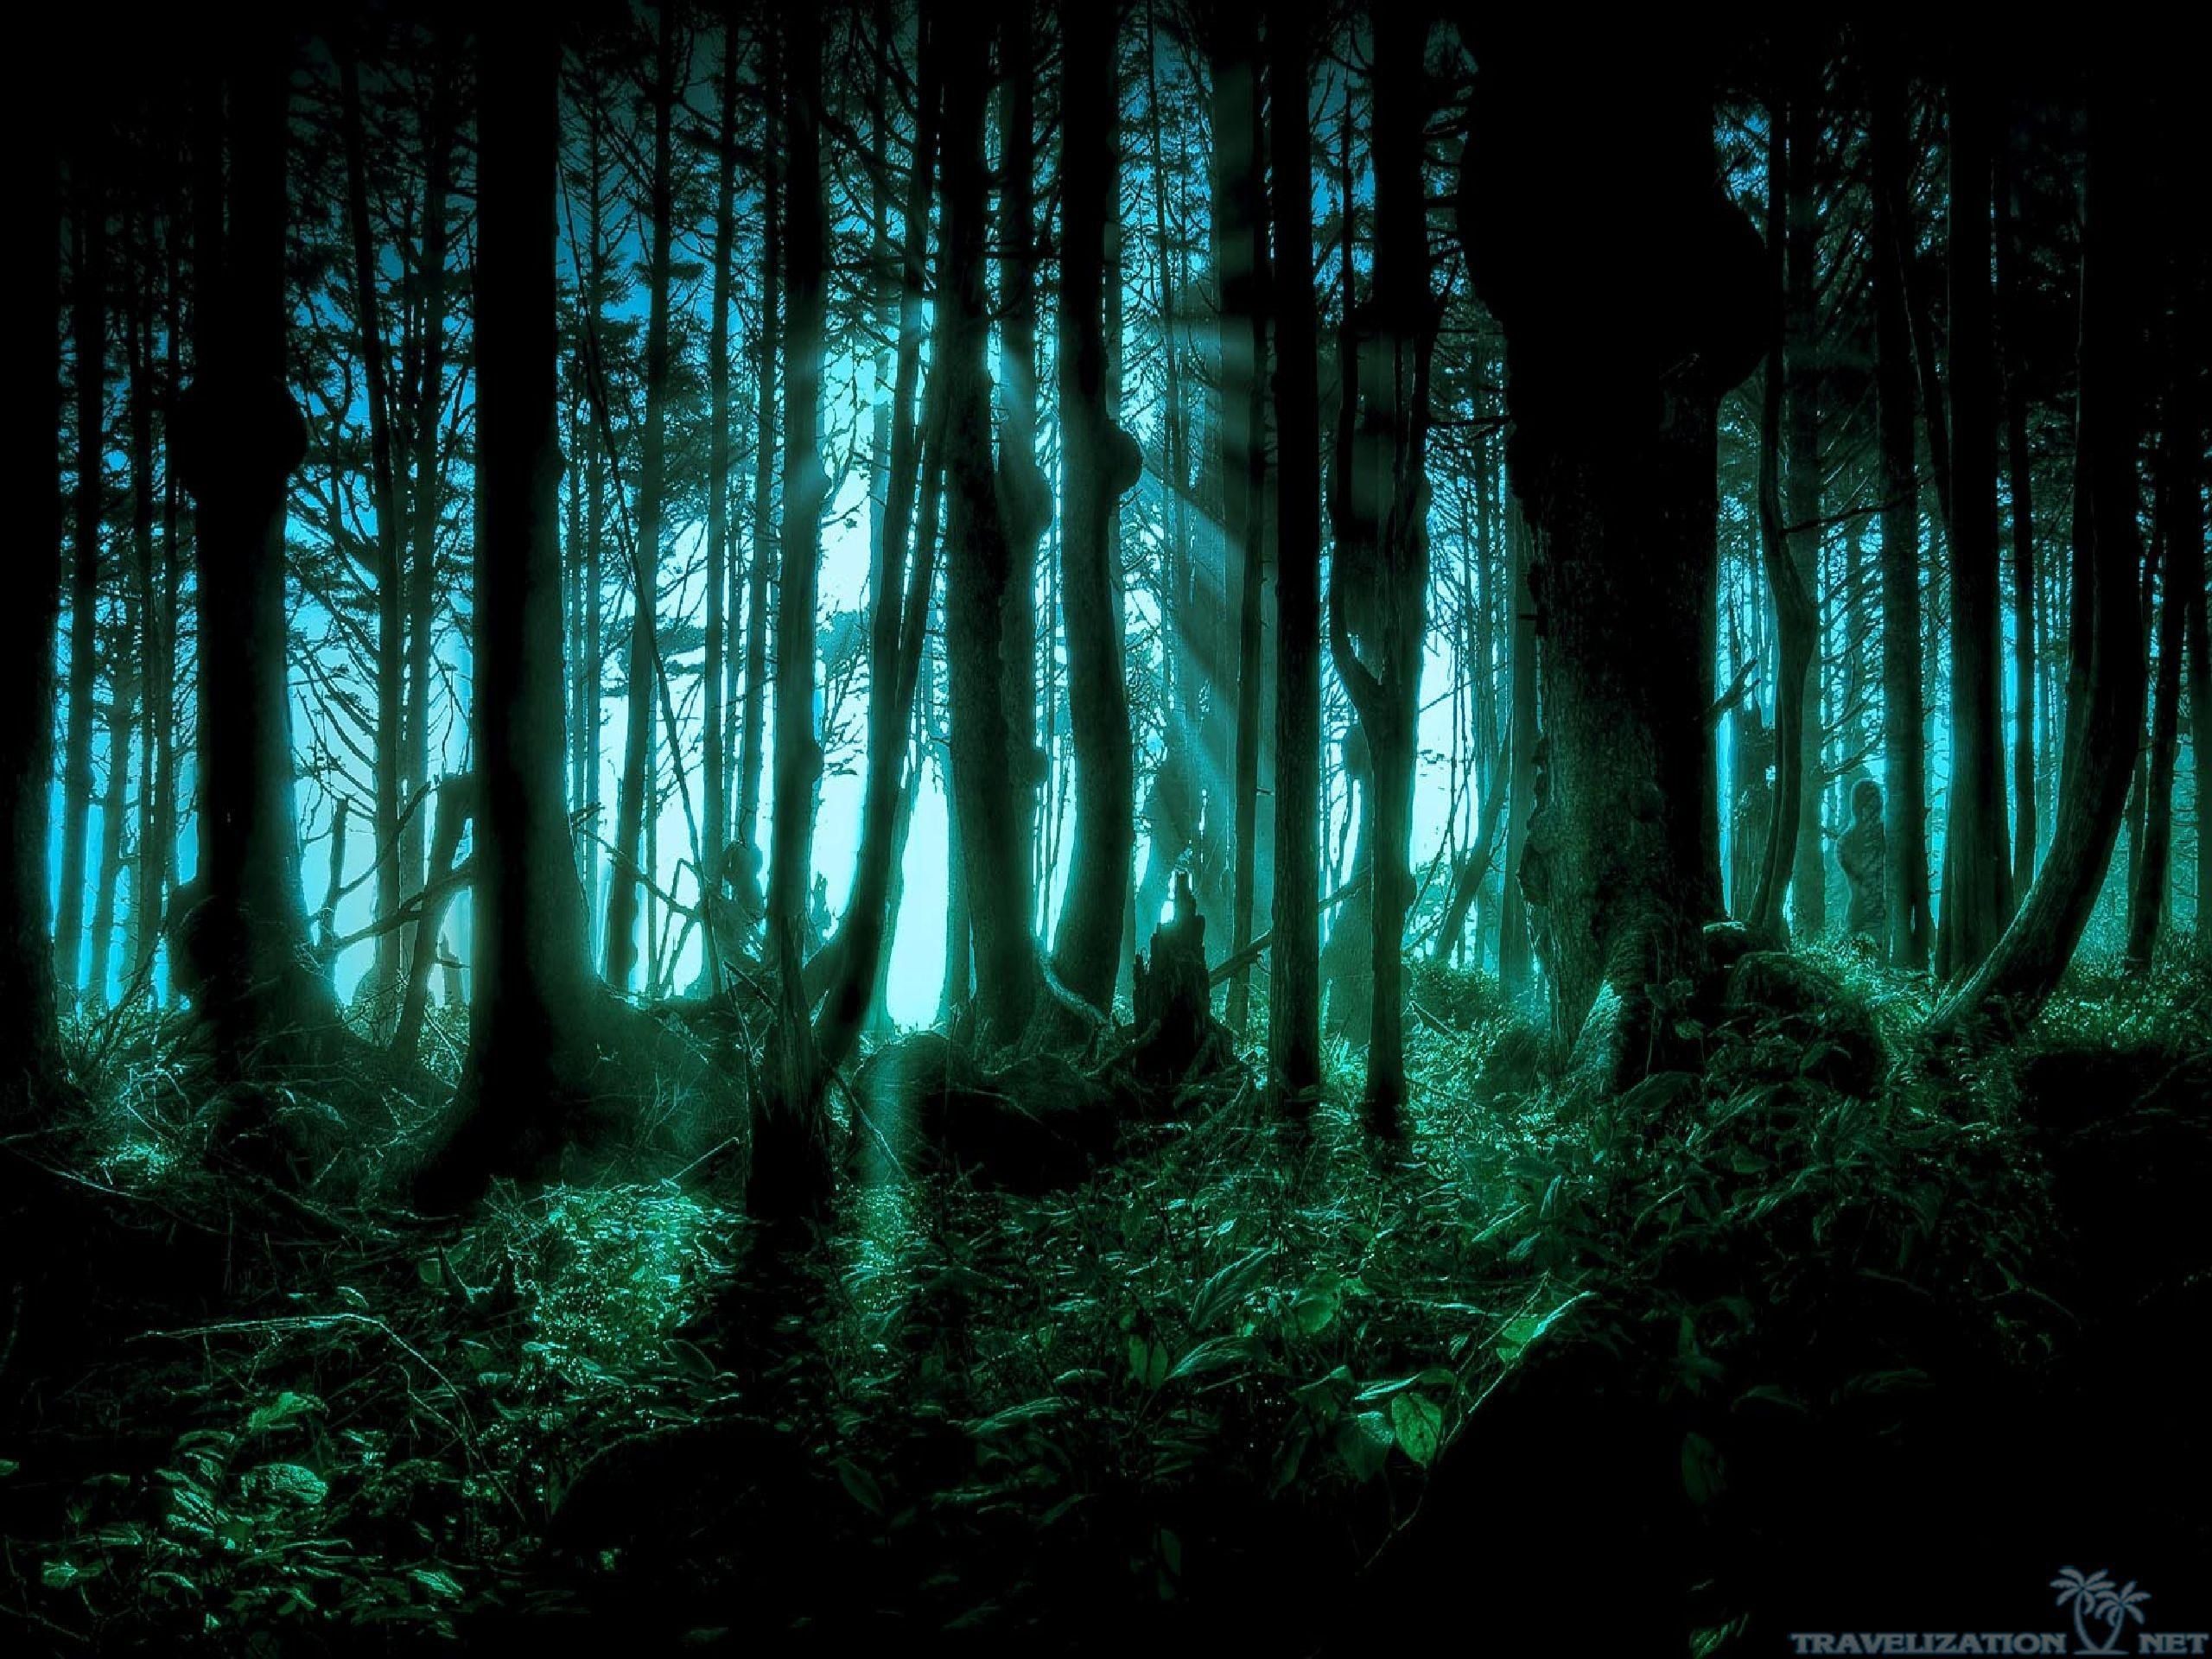 Res: 2560x1920, creepy-forest-wallpapers-background.jpg (2560×1920)